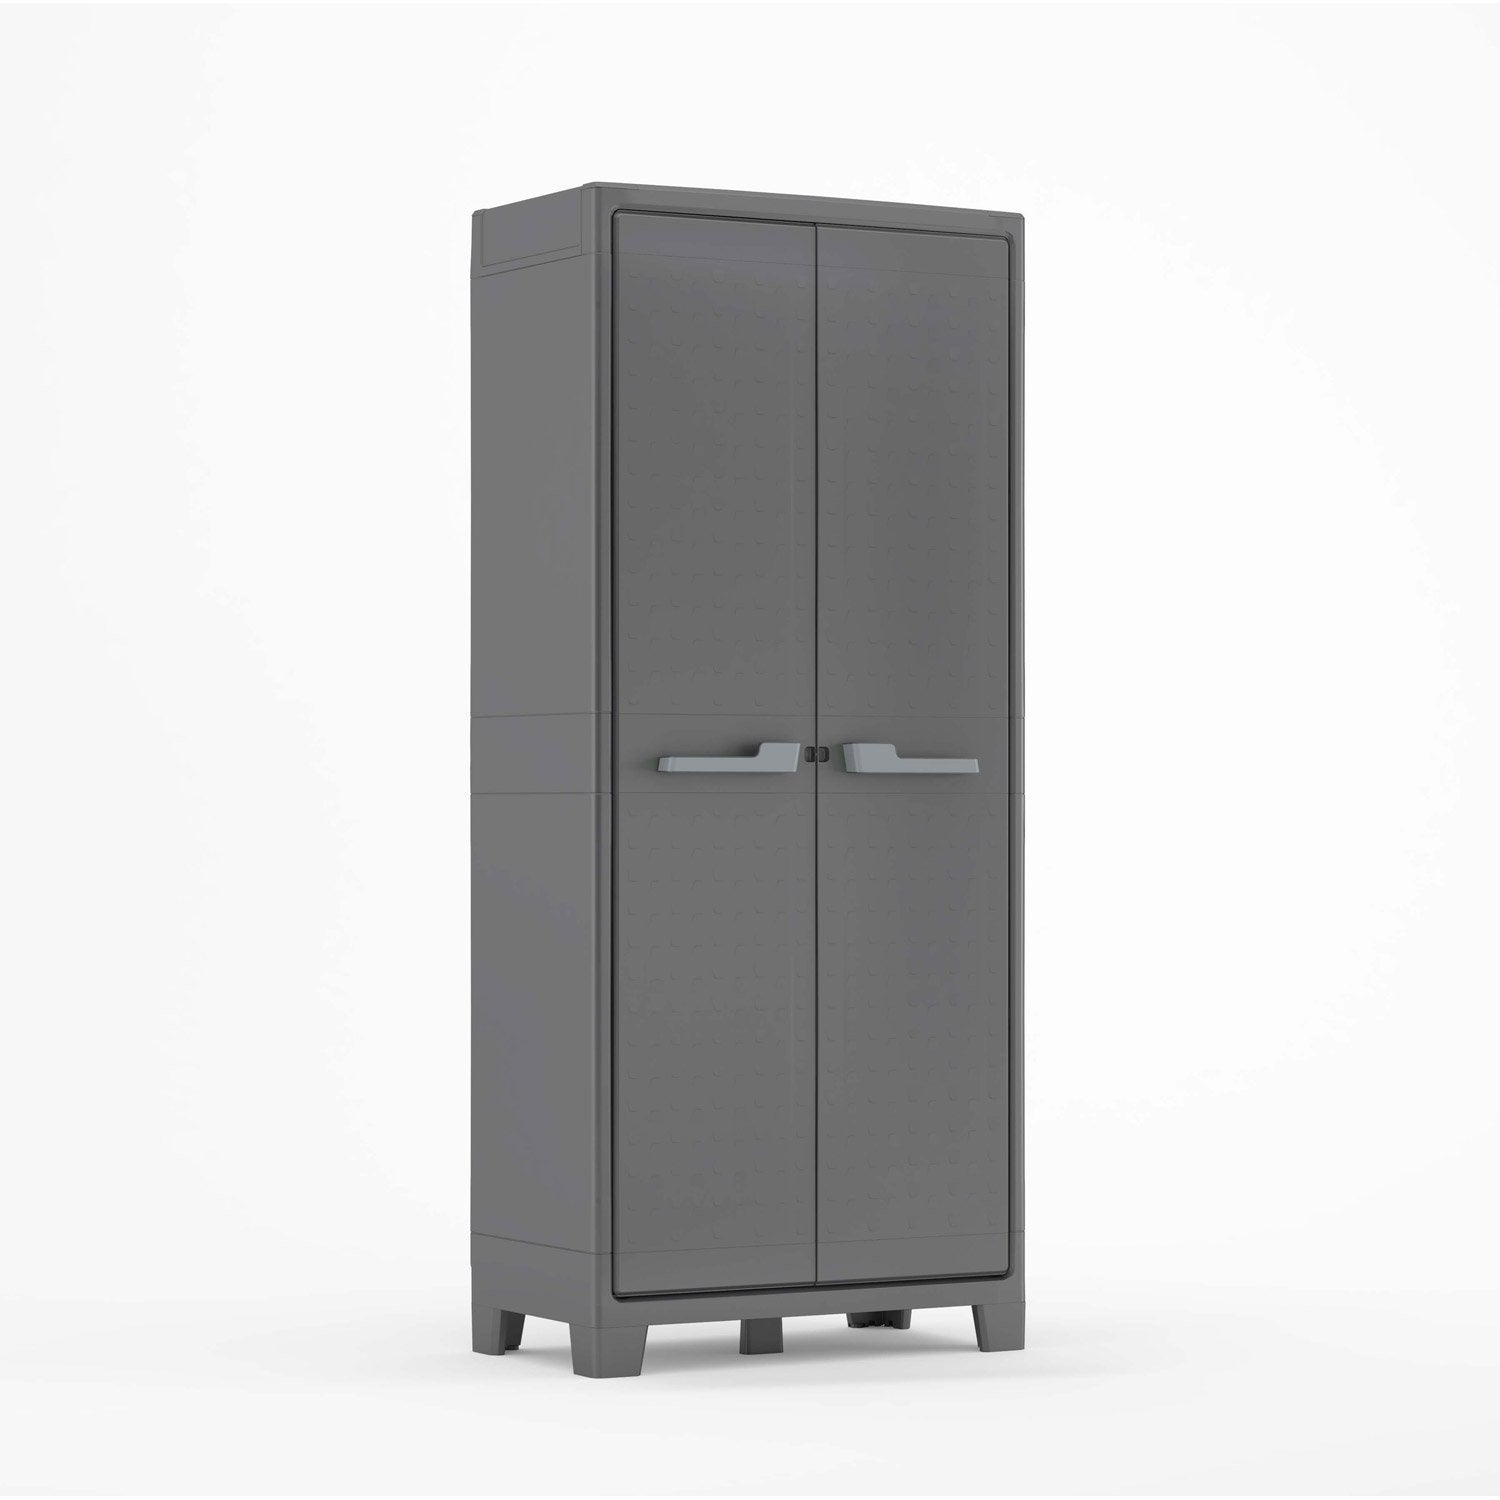 armoire d exterieur resine. Black Bedroom Furniture Sets. Home Design Ideas